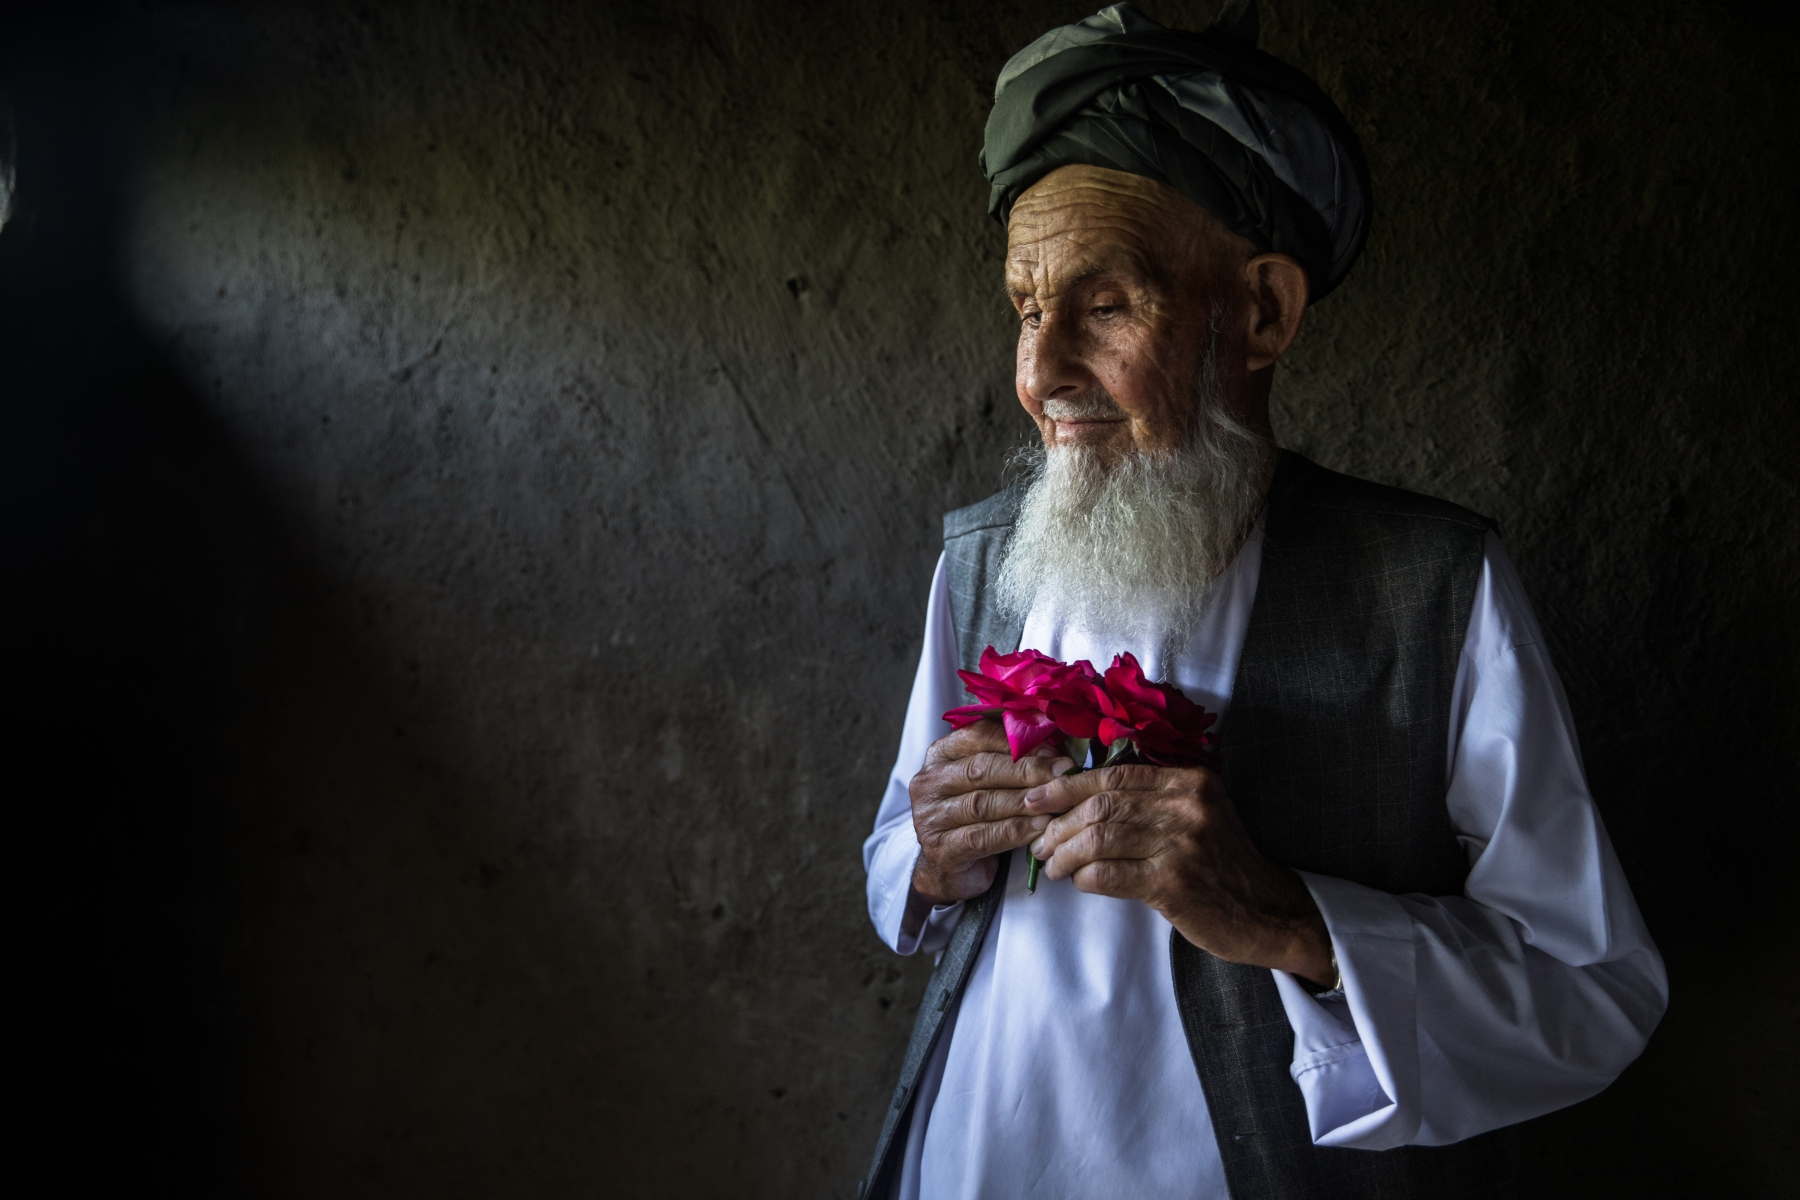 Mahmood Anand is 85 years old, he lives in Parwan Province. His favorite flower is the red rose. The scent of flowers soothes him and gives him a feeling of well-being.